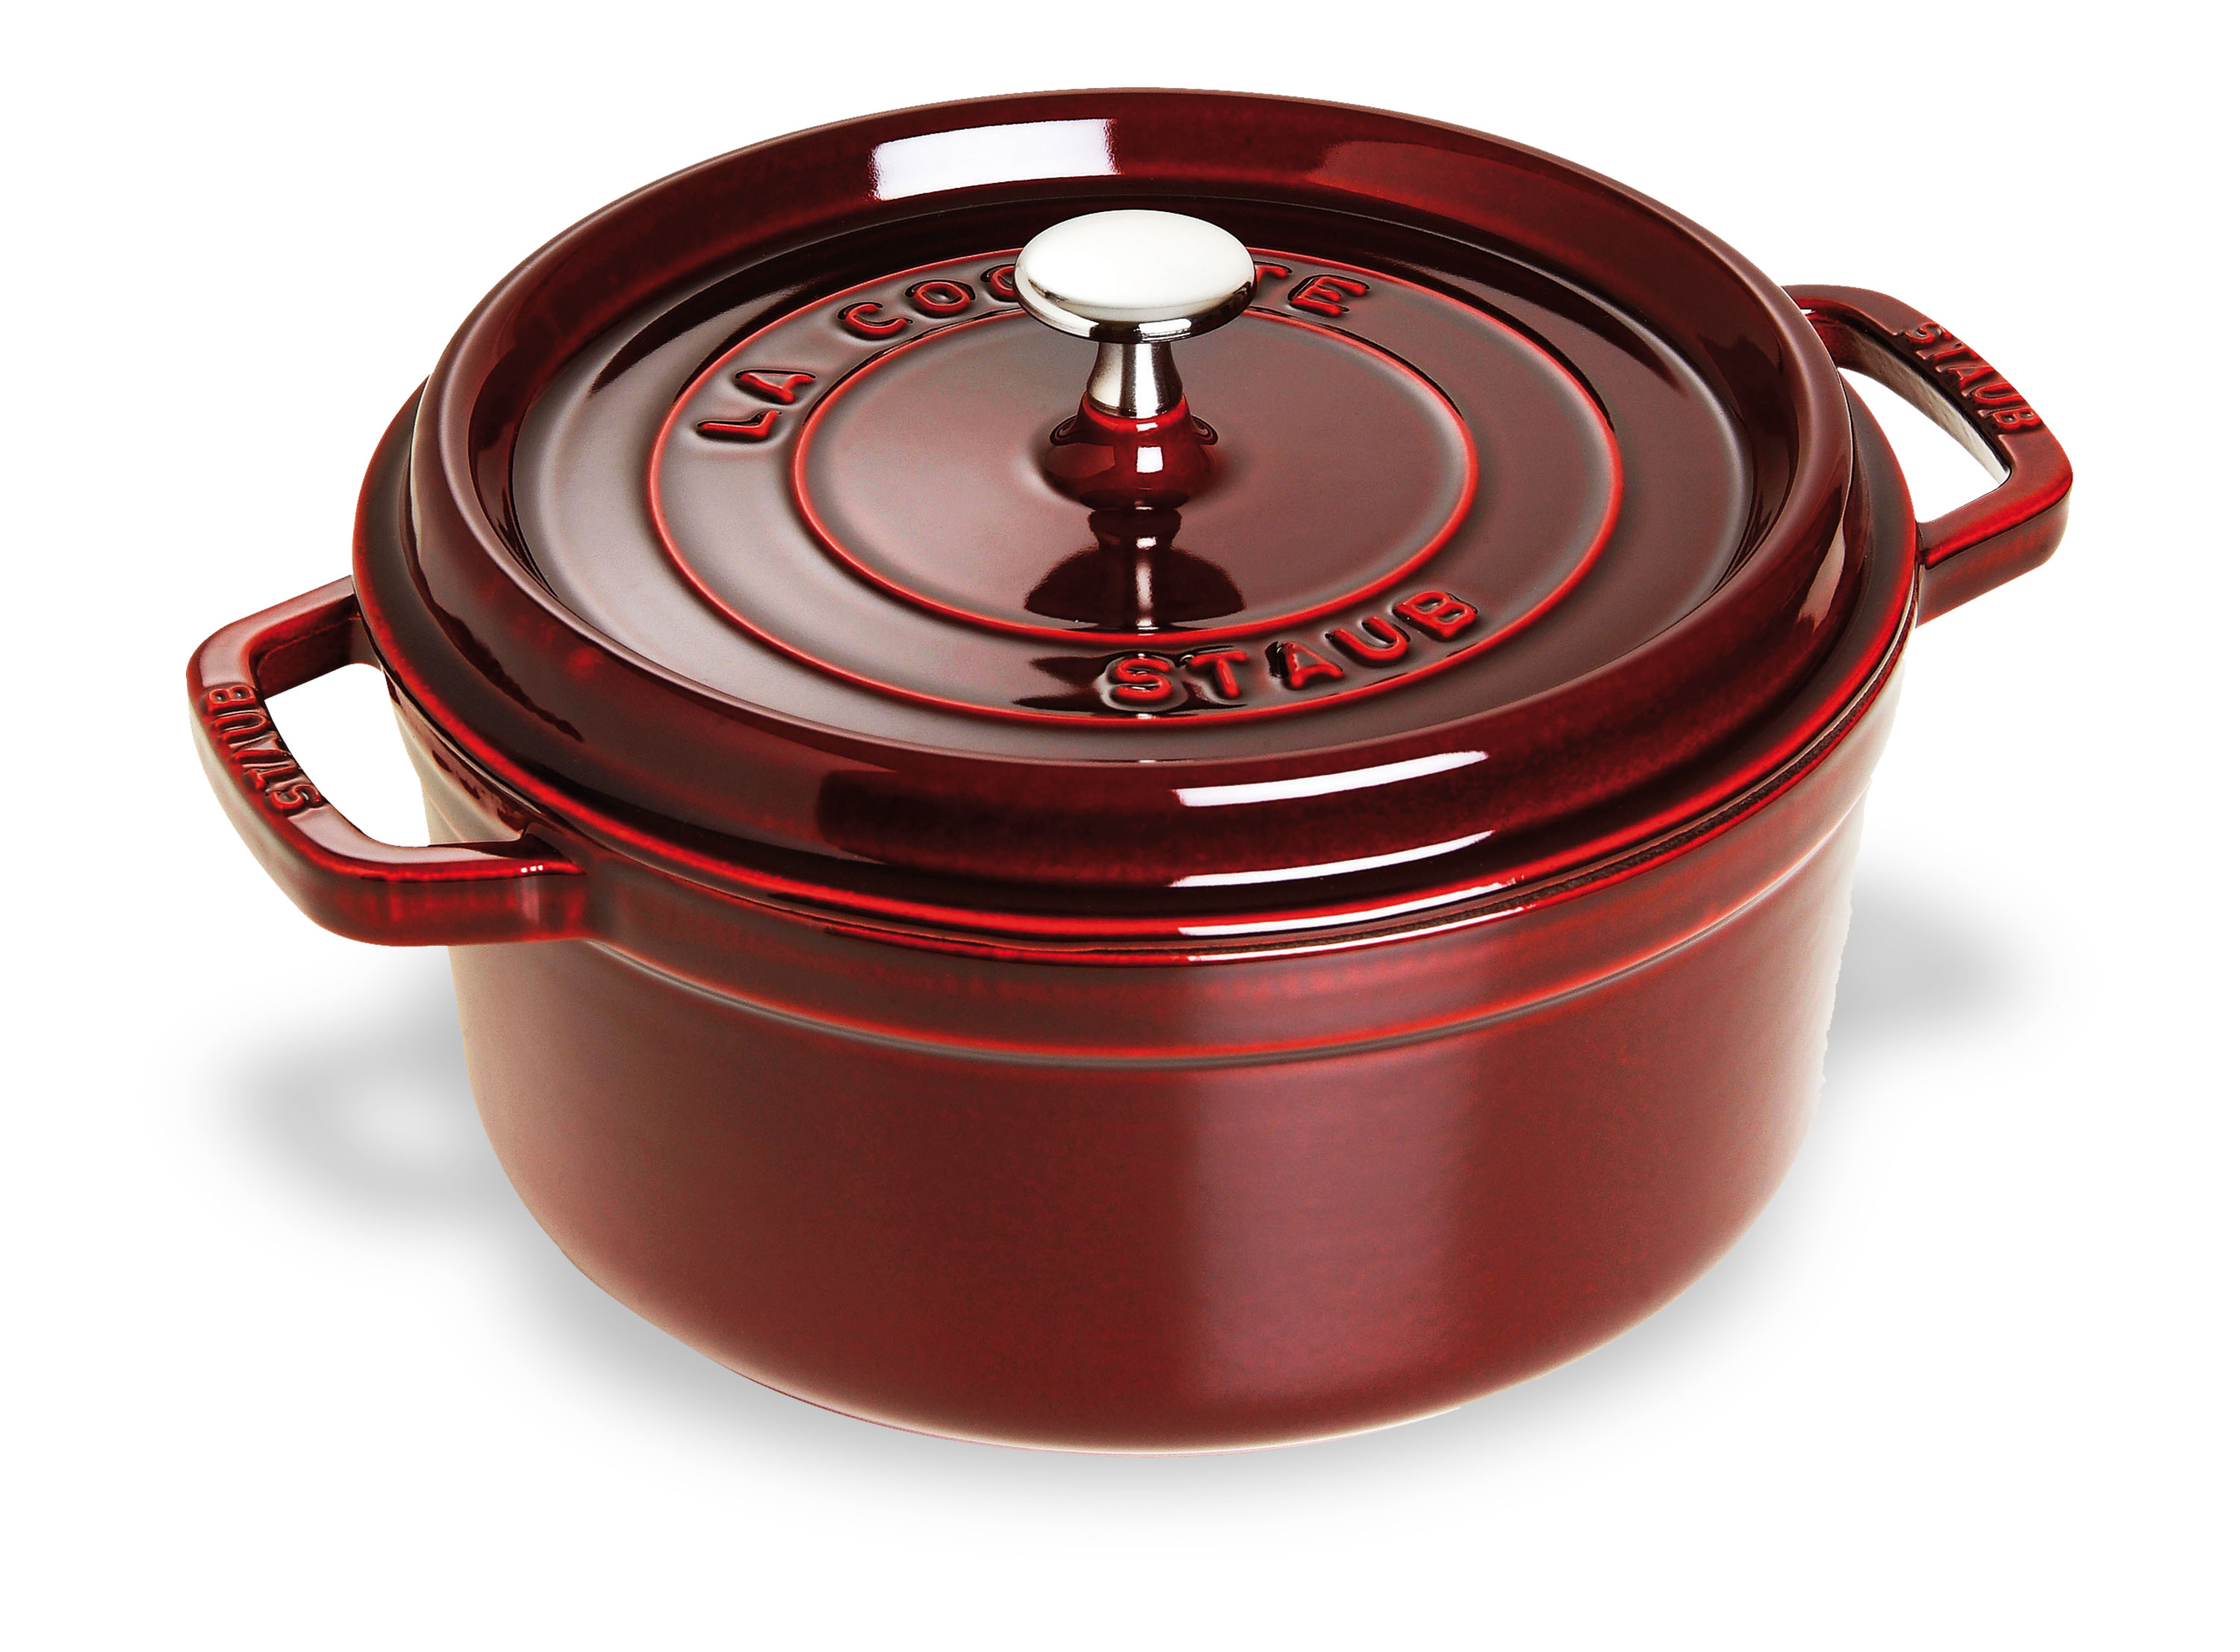 Staub Round Dutch Oven 7 Quart Grenadine Cutlery And More